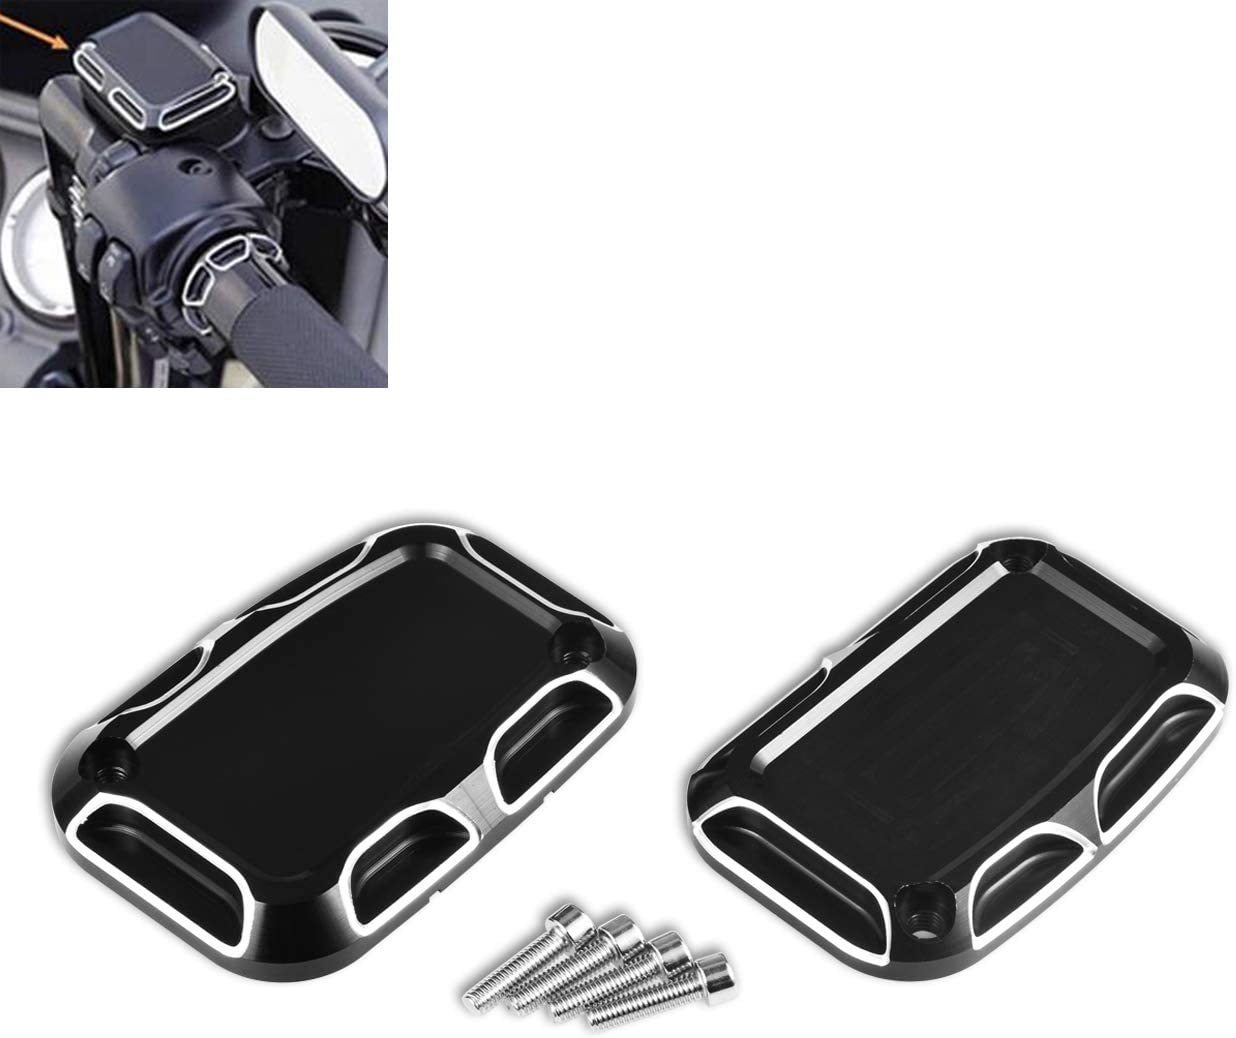 KATUR Motorcycle Brake Master Clutch Black Cylinder A surprise price is realized Covers Max 75% OFF Chrom